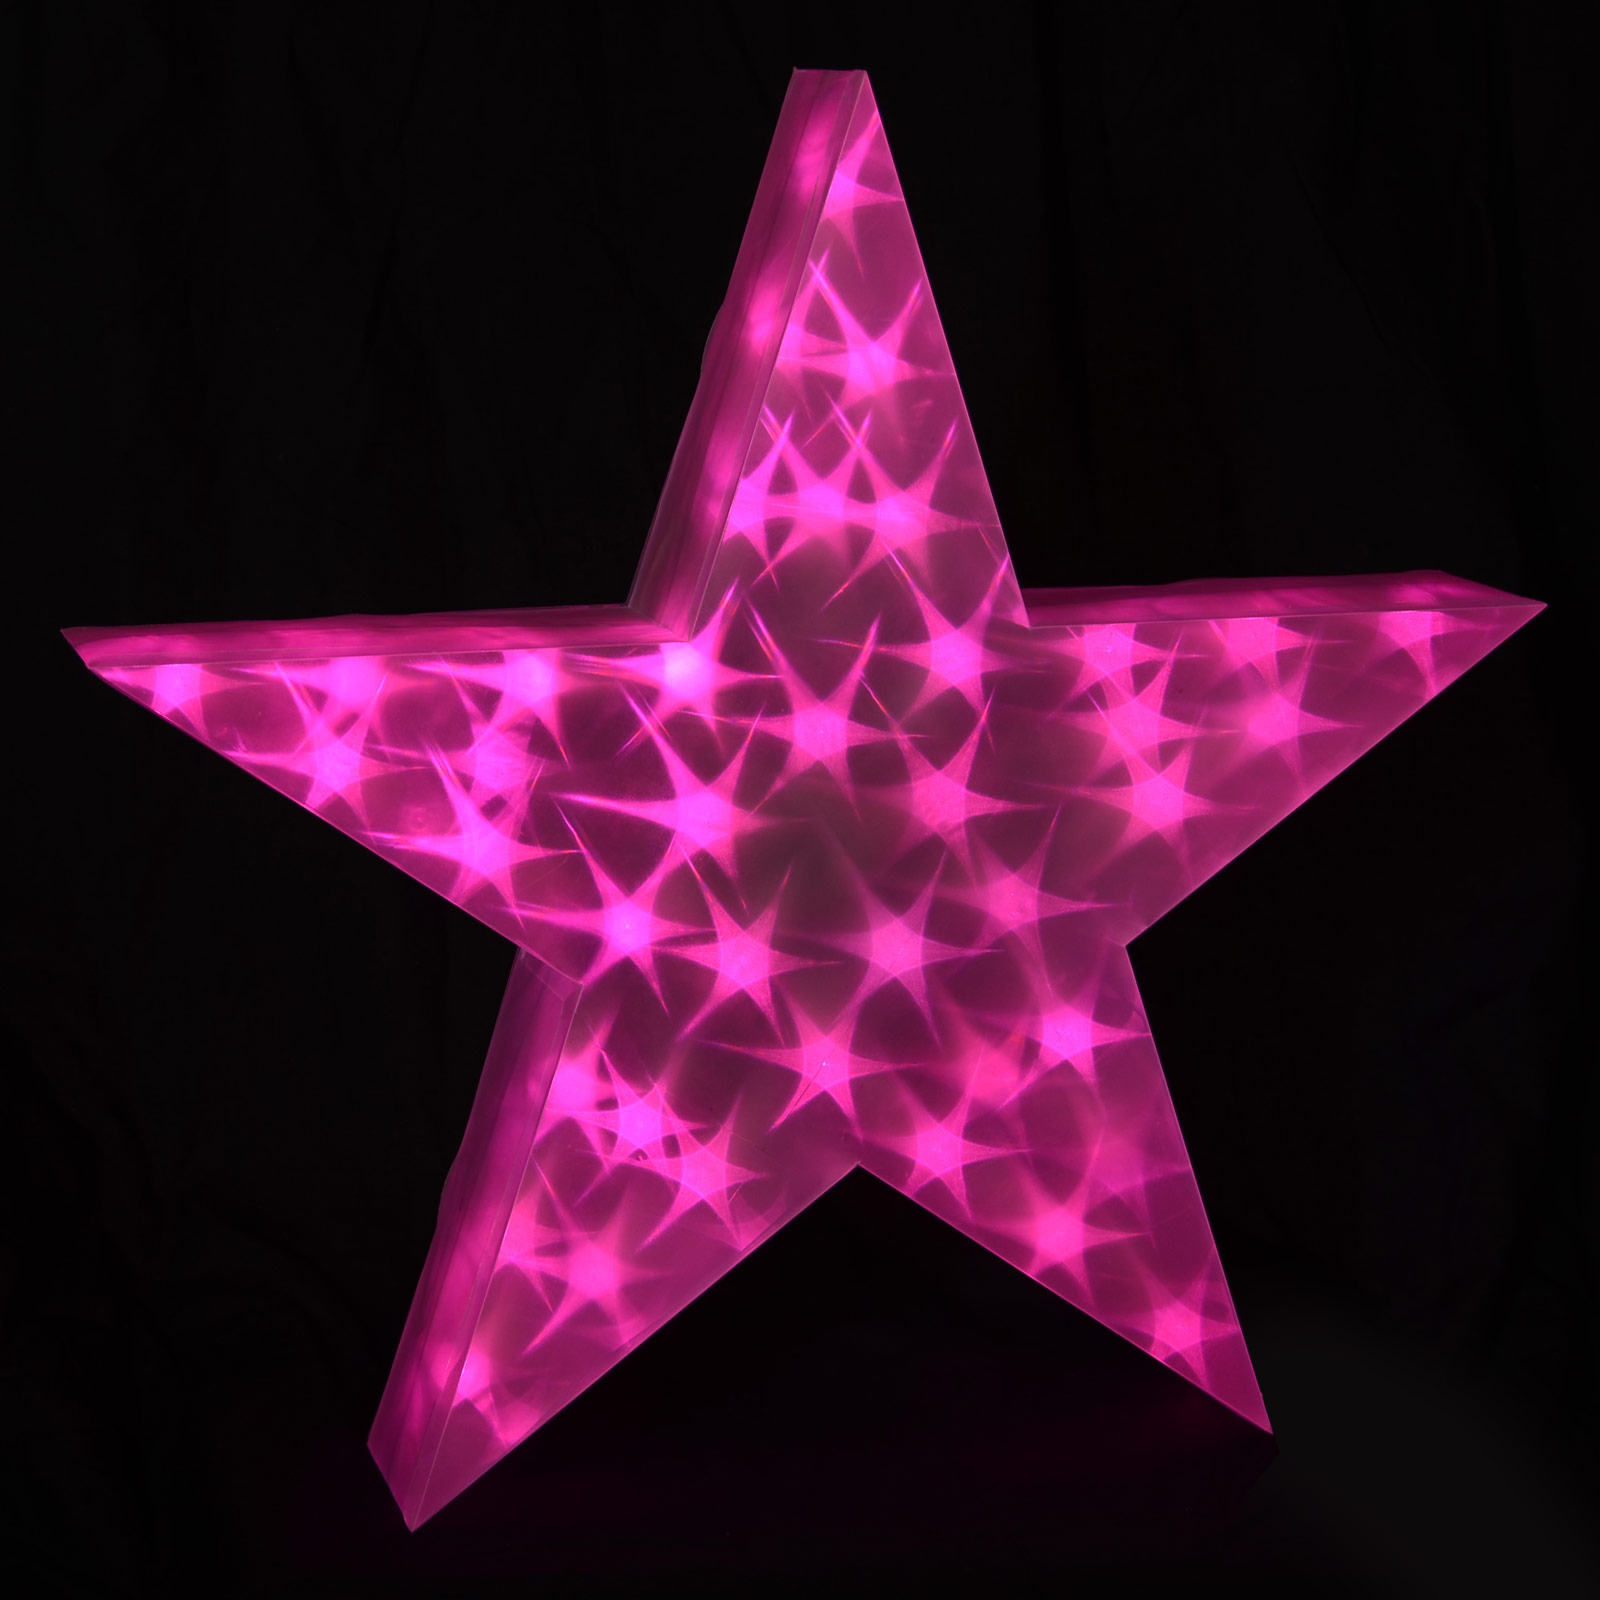 Light Up Holographic LED Star Decoration 50cm 3D PVC Indoor Use Pink Christmas